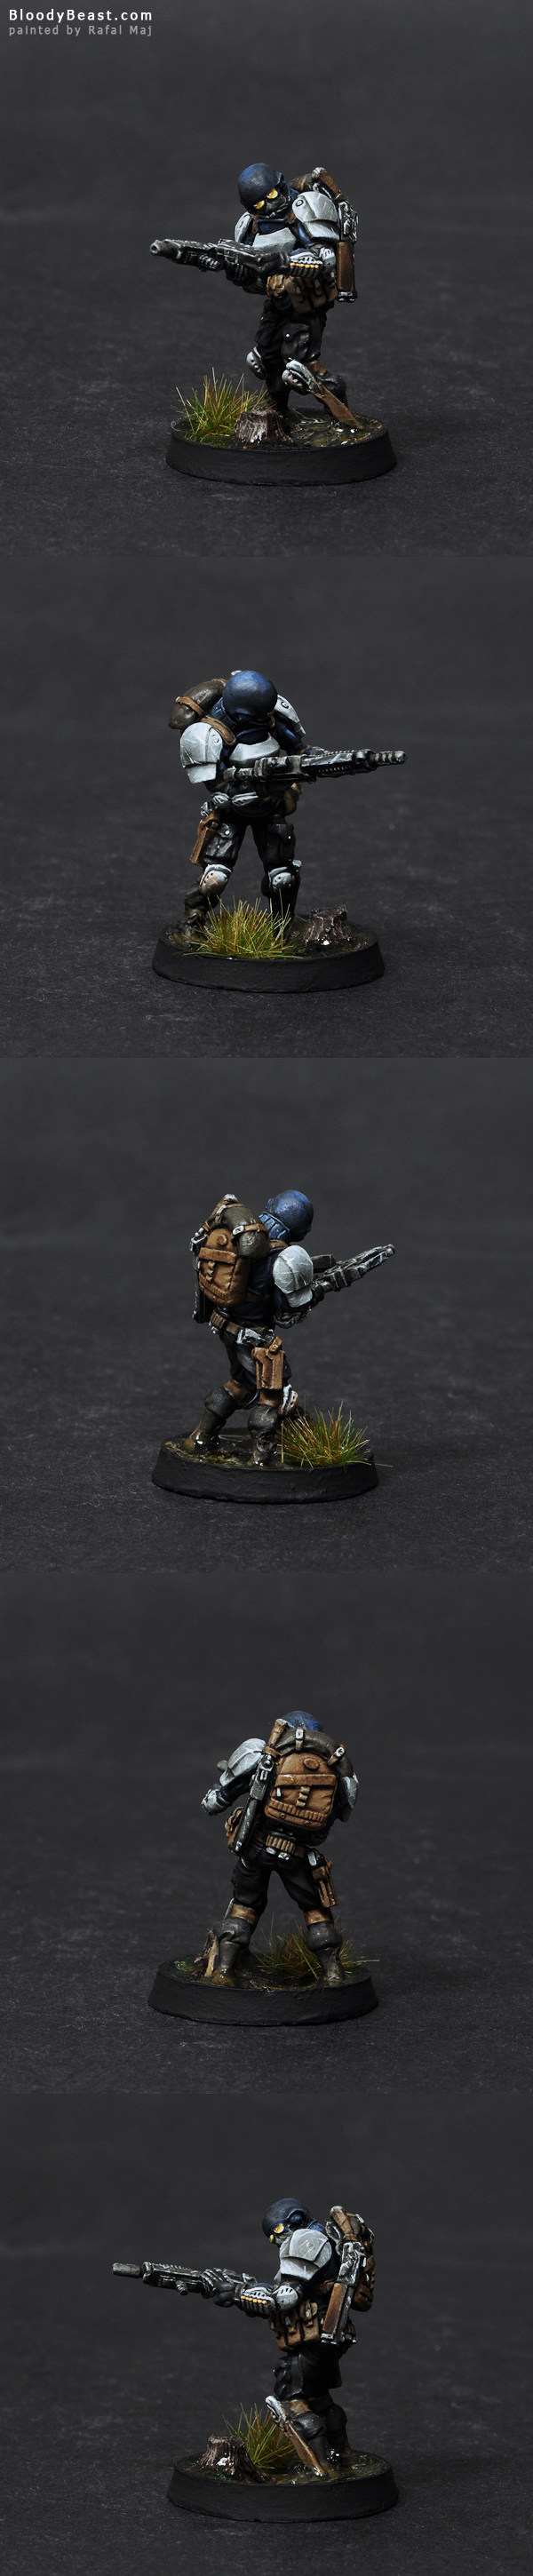 Ariadna Moblots Light Shotgun painted by Rafal Maj (BloodyBeast.com)